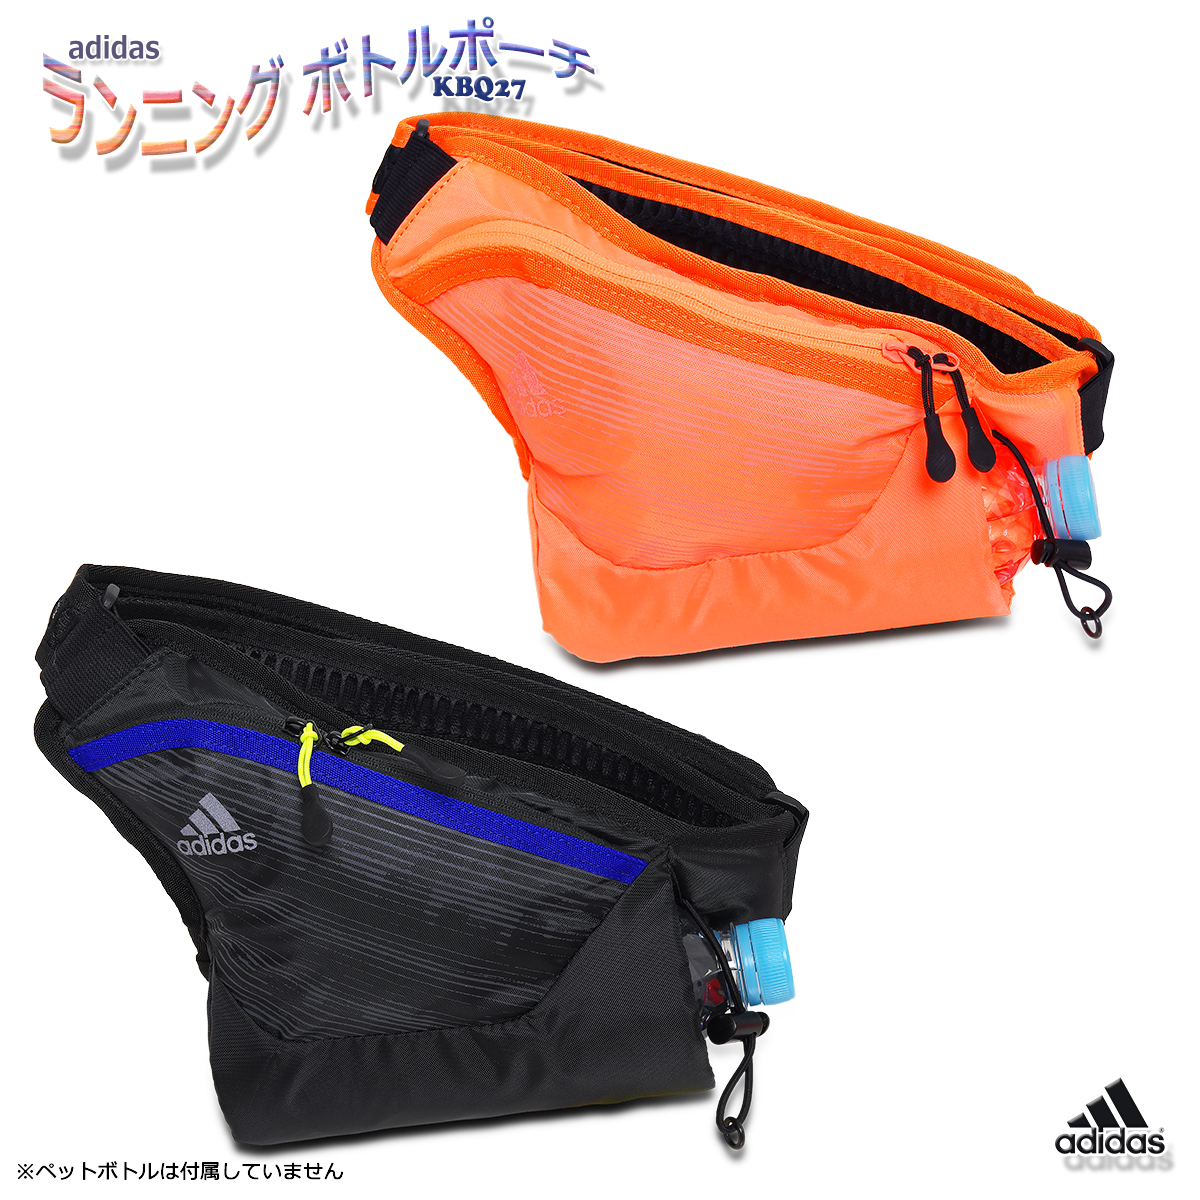 07c78ef3c1a8 Waist bag adidas bottle holder hip bag hydration 500 ml for running jogging  for walking for adidas and running bottle pouch KBQ27 05P11Apr15